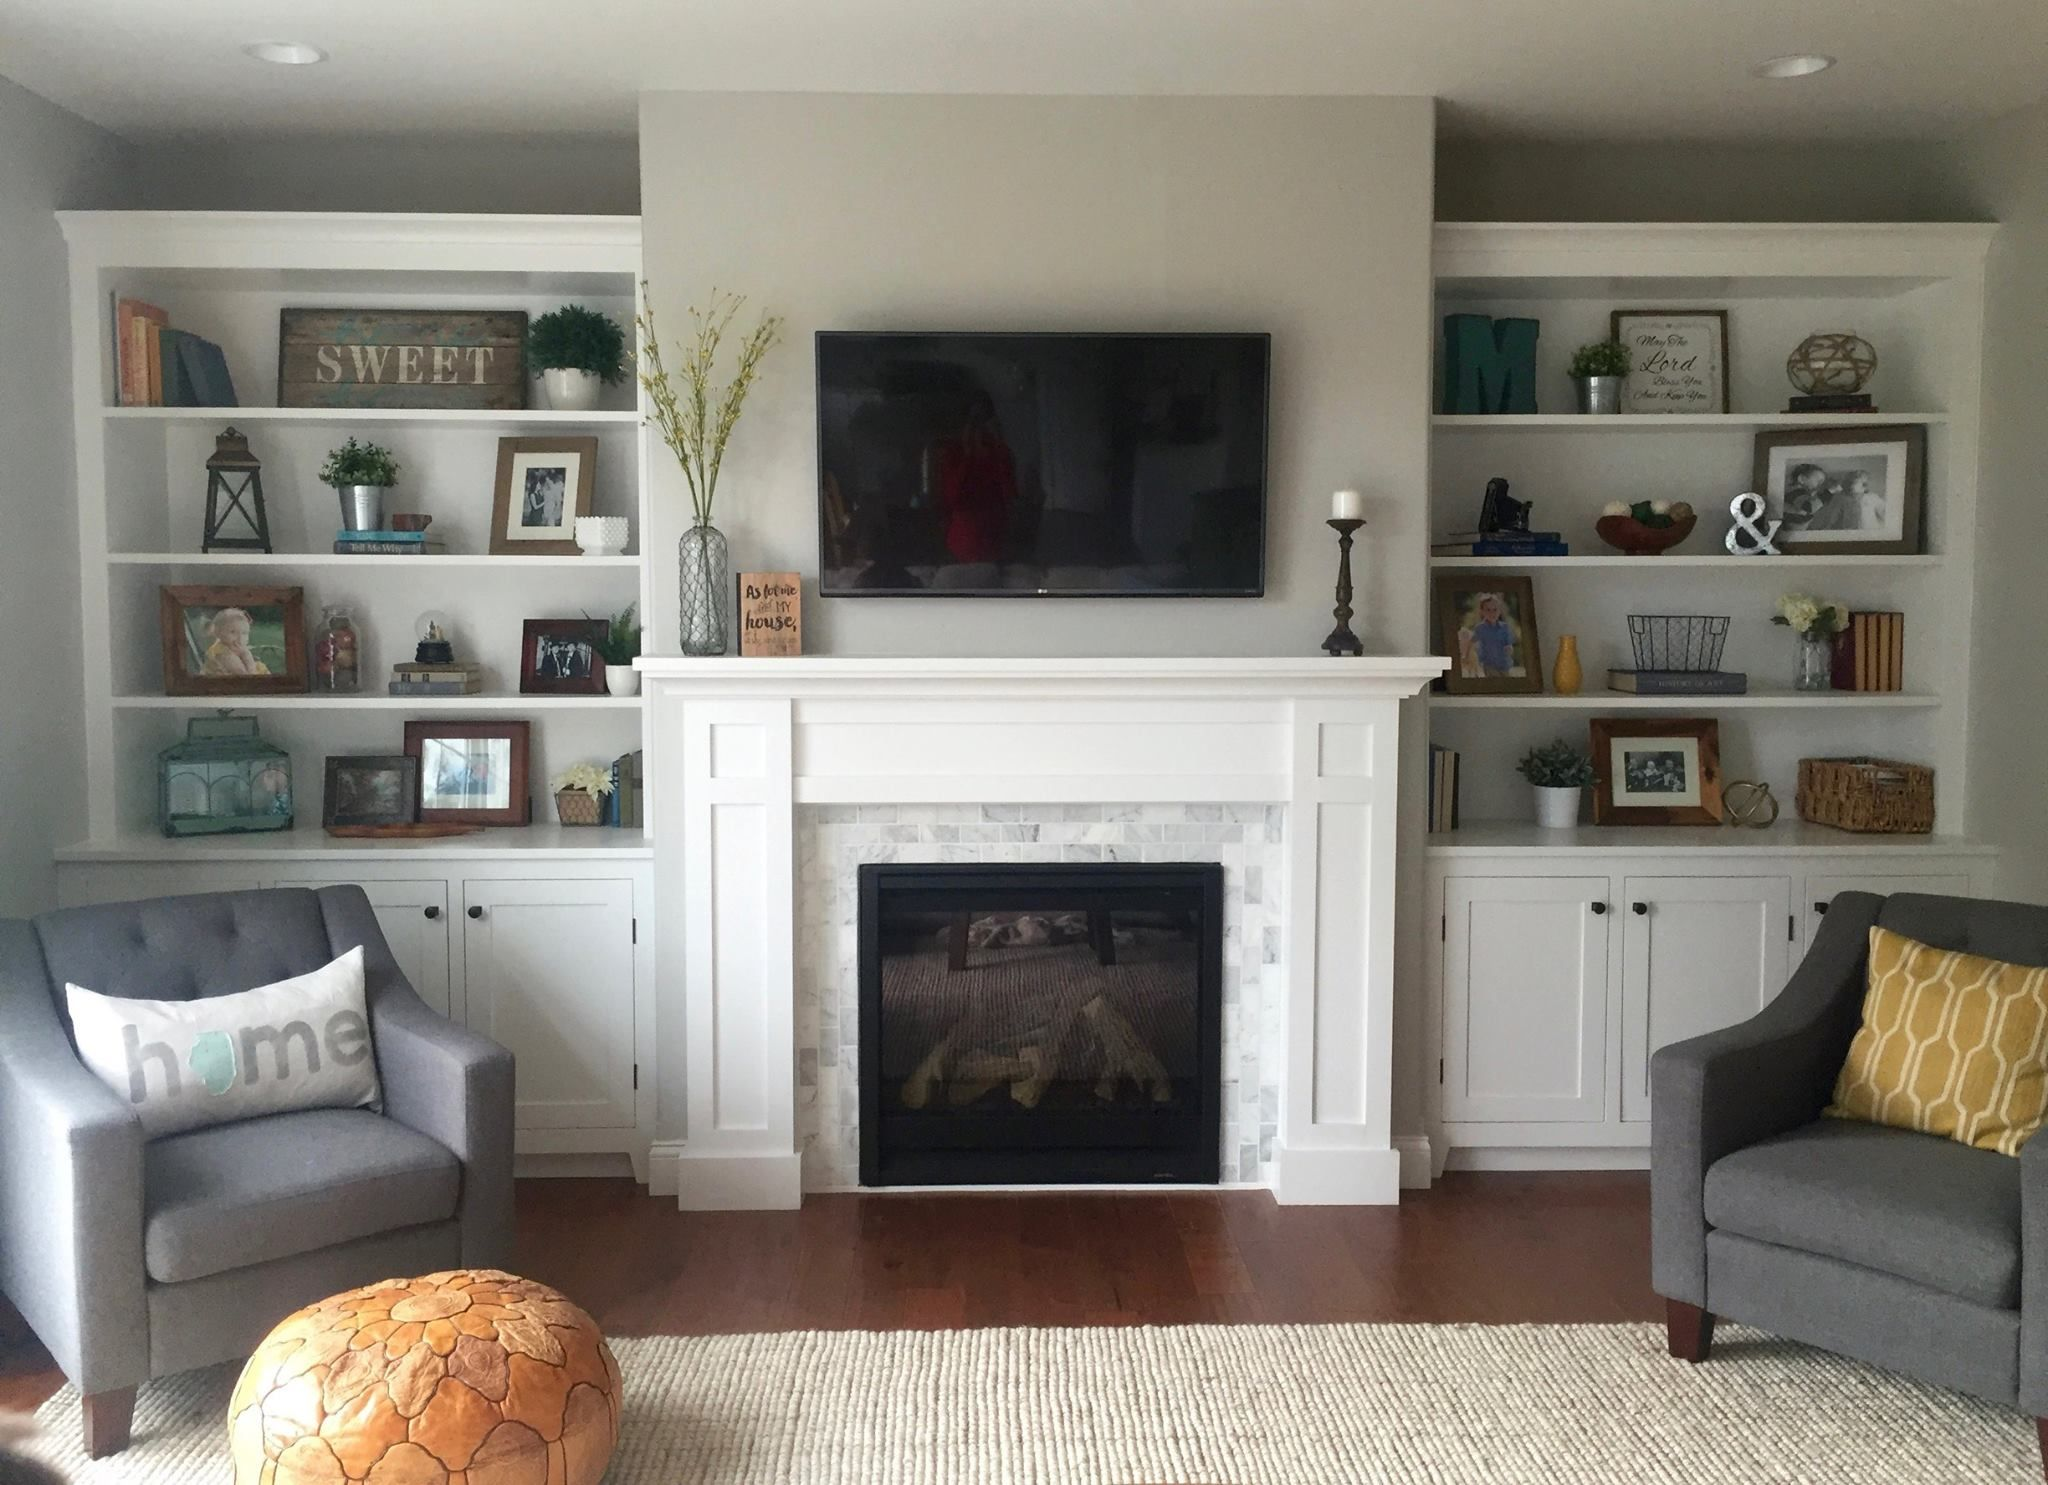 Fireplace Surround Bookshelves Luxury How to Build A Built In the Cabinets Woodworking